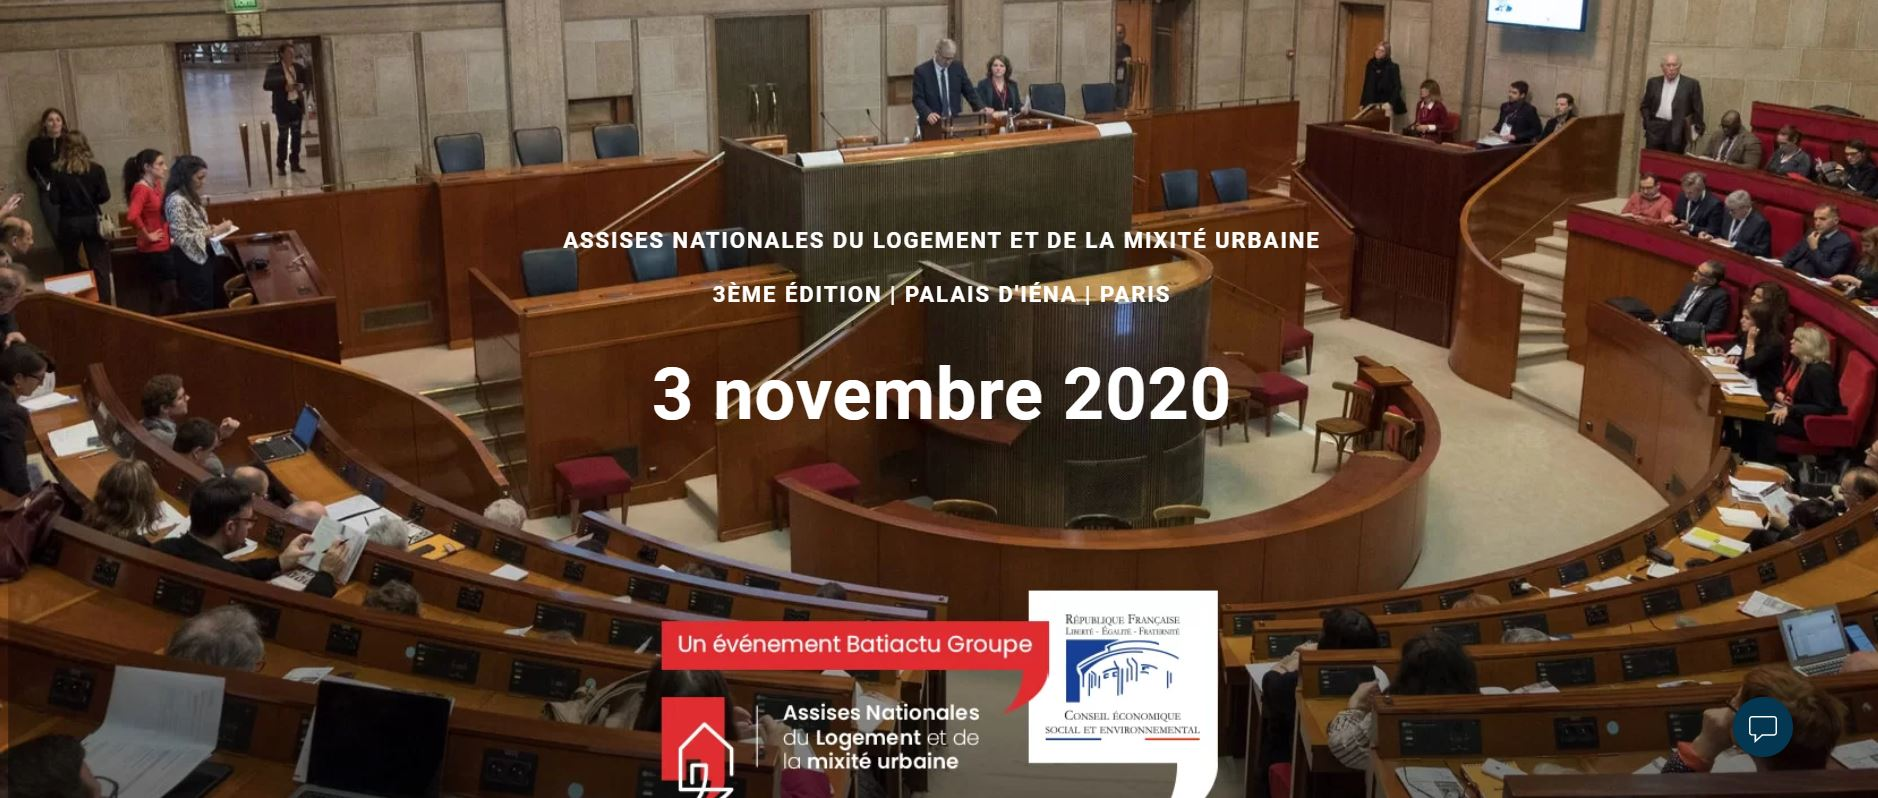 assises nationales du logement